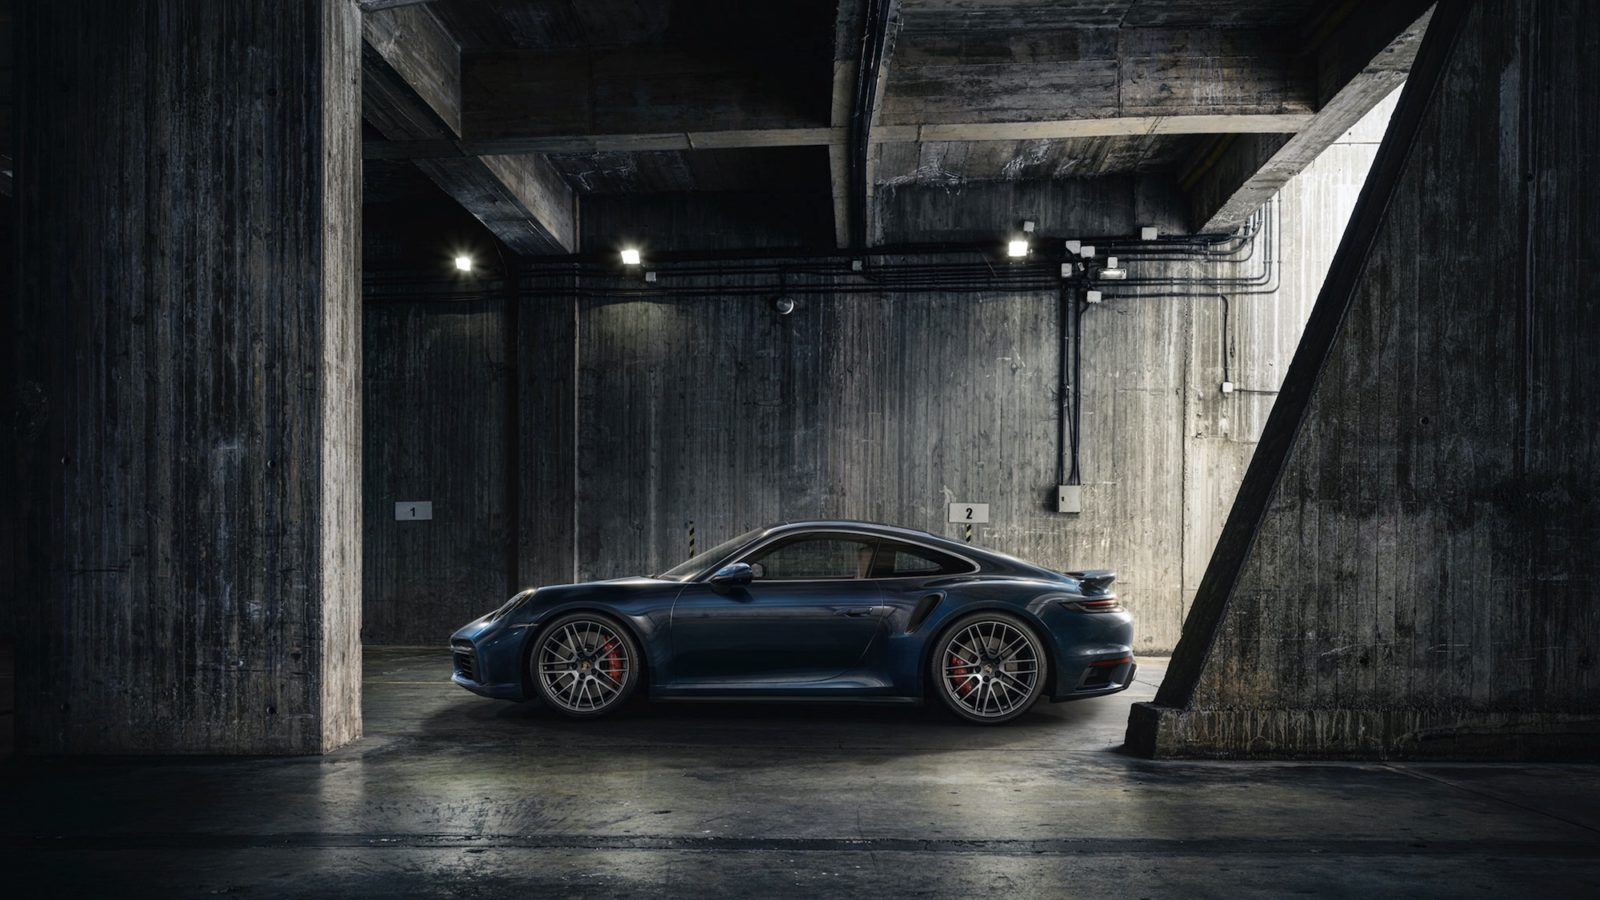 The new Porsche 911 Turbo will do 0-100kph in only 2.8 seconds